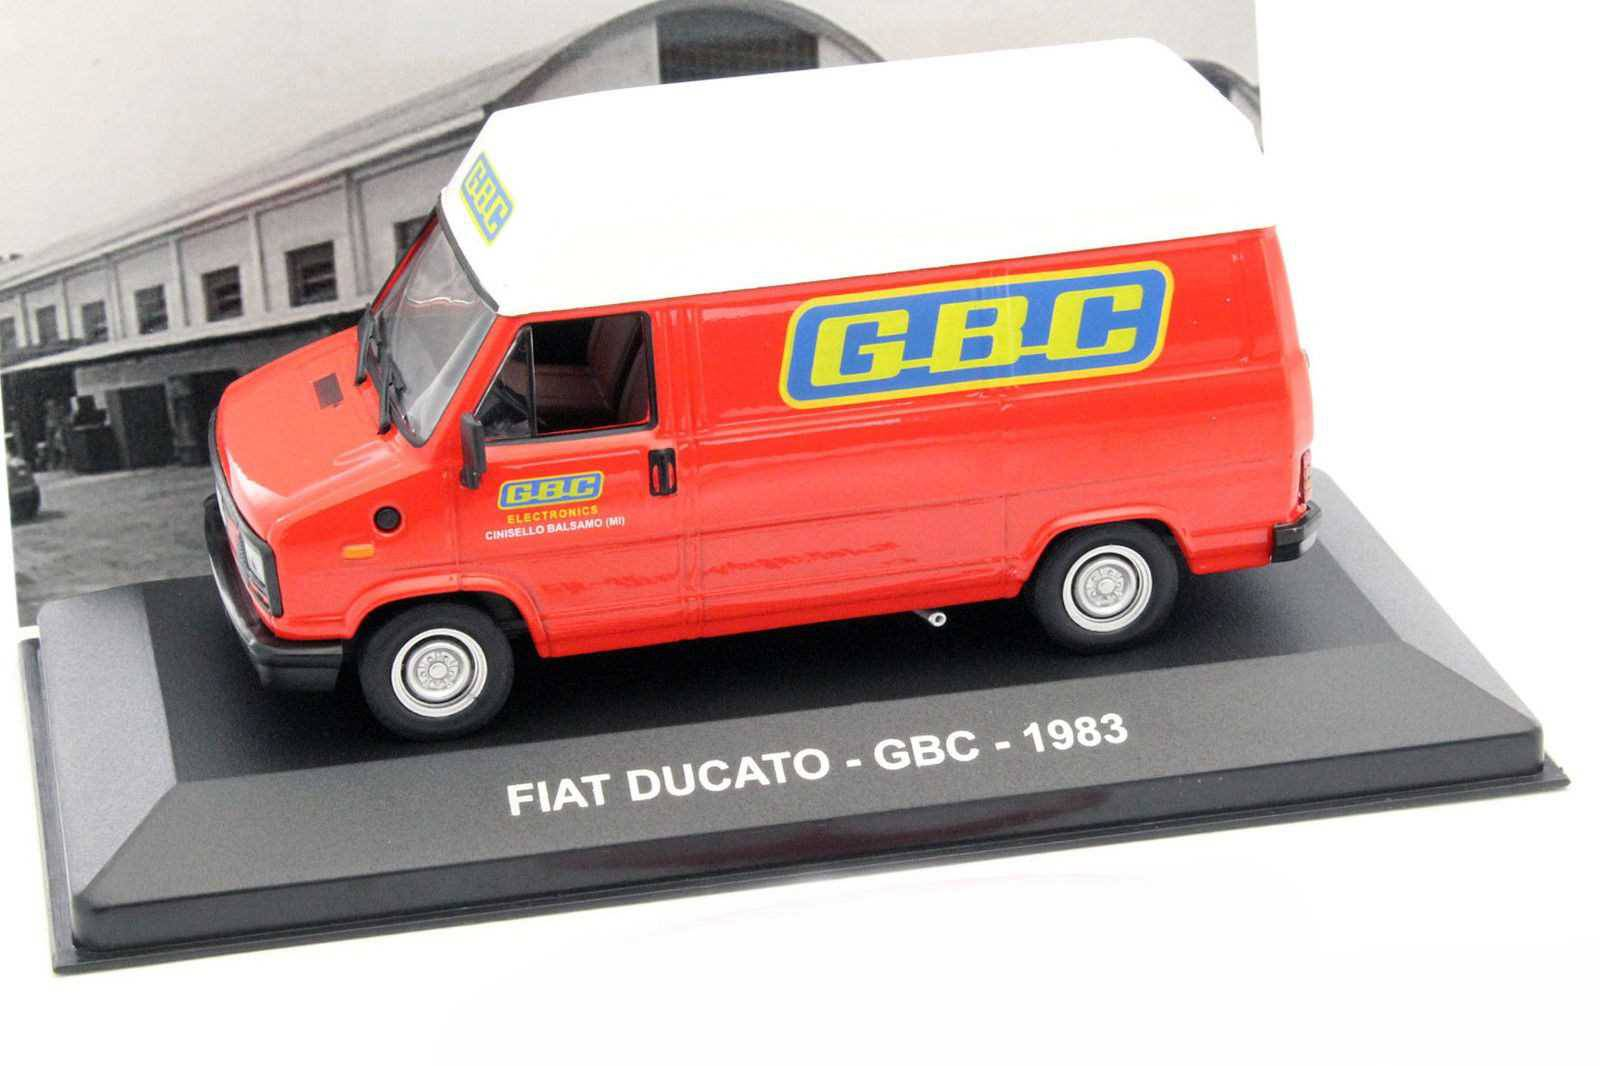 neu fiat ducato i phase i 1982 1990 kasten gbc rot. Black Bedroom Furniture Sets. Home Design Ideas